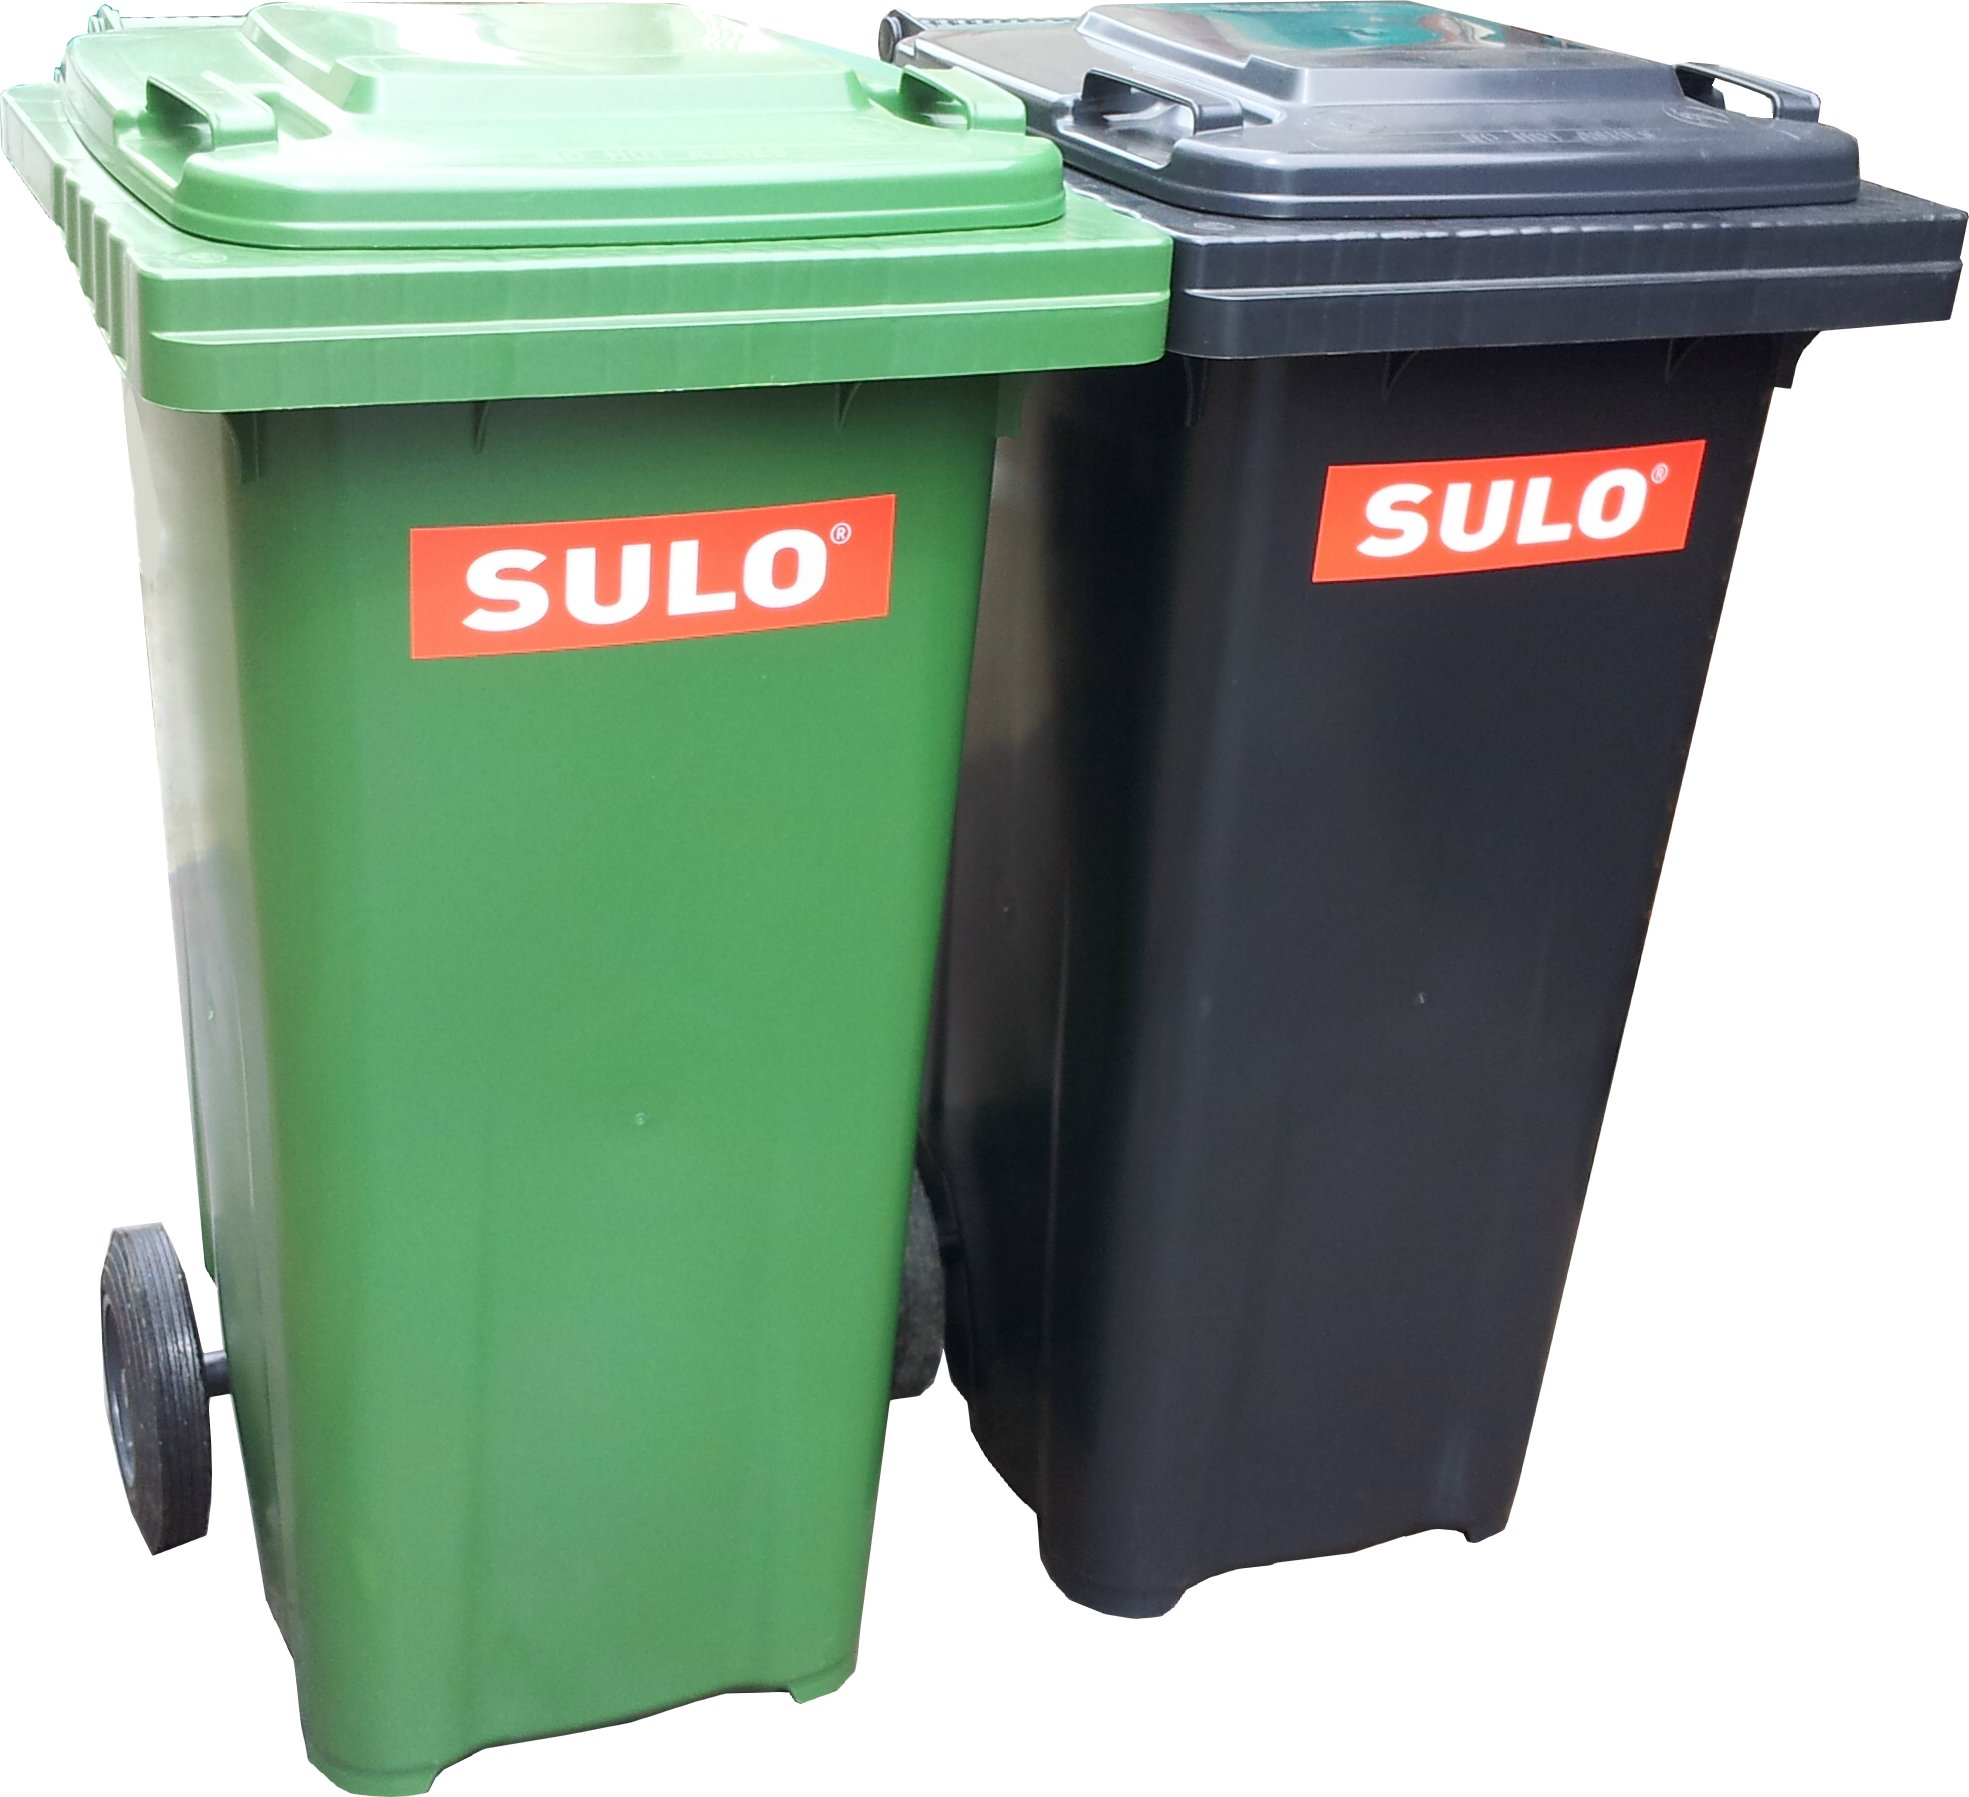 SULO 240-LITRES 2 WHEELS HIGH DENSITY POLYETHYLENE (HDPE) MOBILE GARBAGE BIN (MGB)